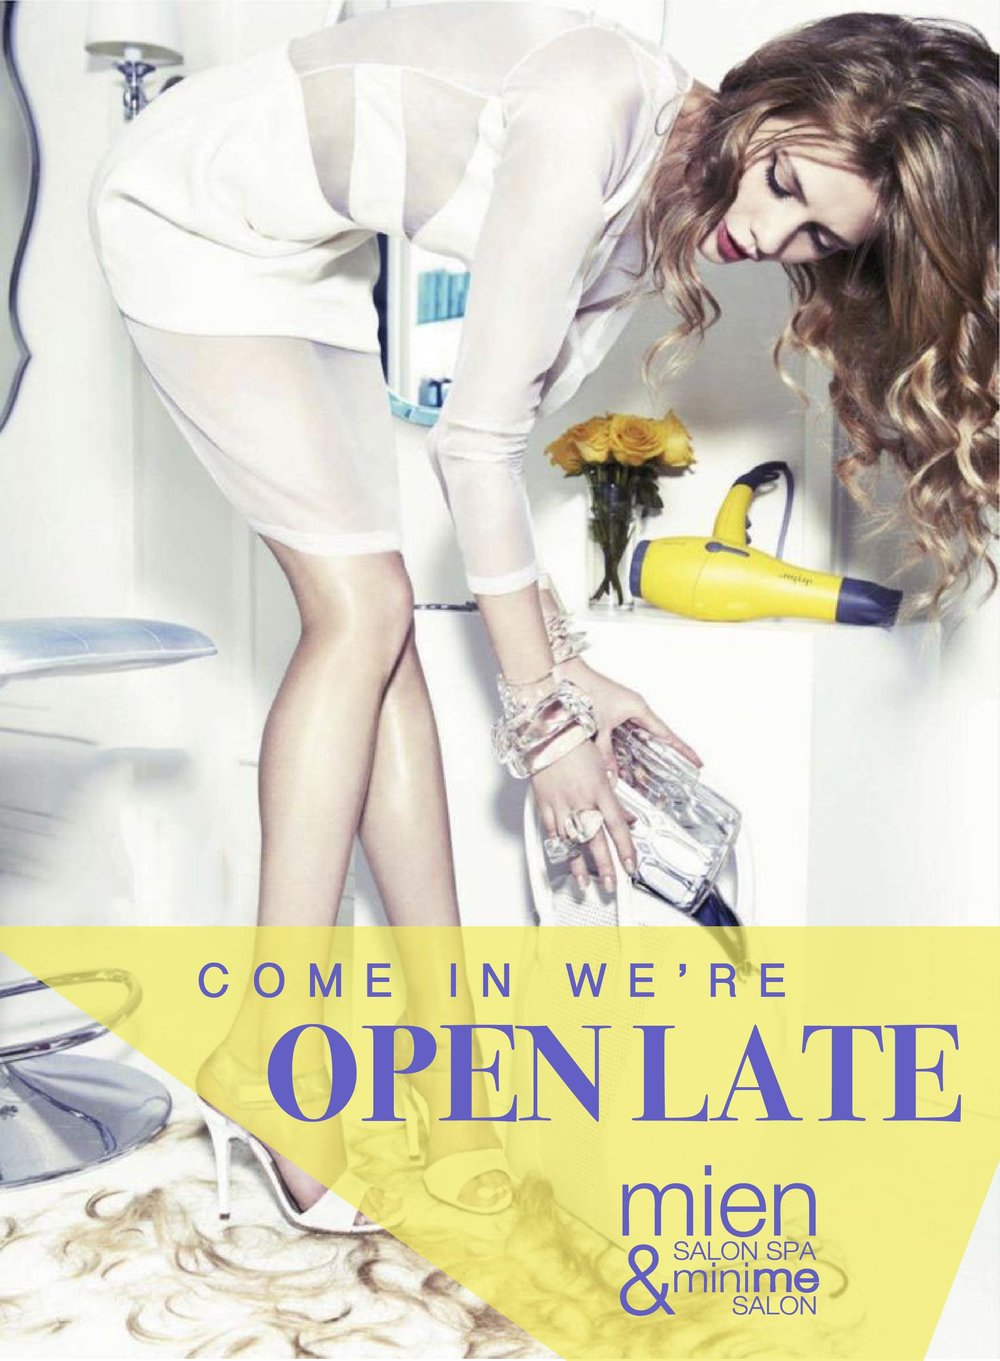 working long hours? - Want to get your hair done or pamper yourself in our beautiful spa during the week but struggle to get away from the office during business hours?GOOD NEWS!!!!We will be extending our opening hours:MIEN SALON SPA:TUES - FRI: 10am - 9pmSAT: 9am - 5pmSUN: CLOSEDMini Me SalonTUES: 10am - 6pmWED - FRI: 10am - 9pmSAT: 9am - 5pmSUN: CLOSEDCALL OR BOOK ONLINE NOW!